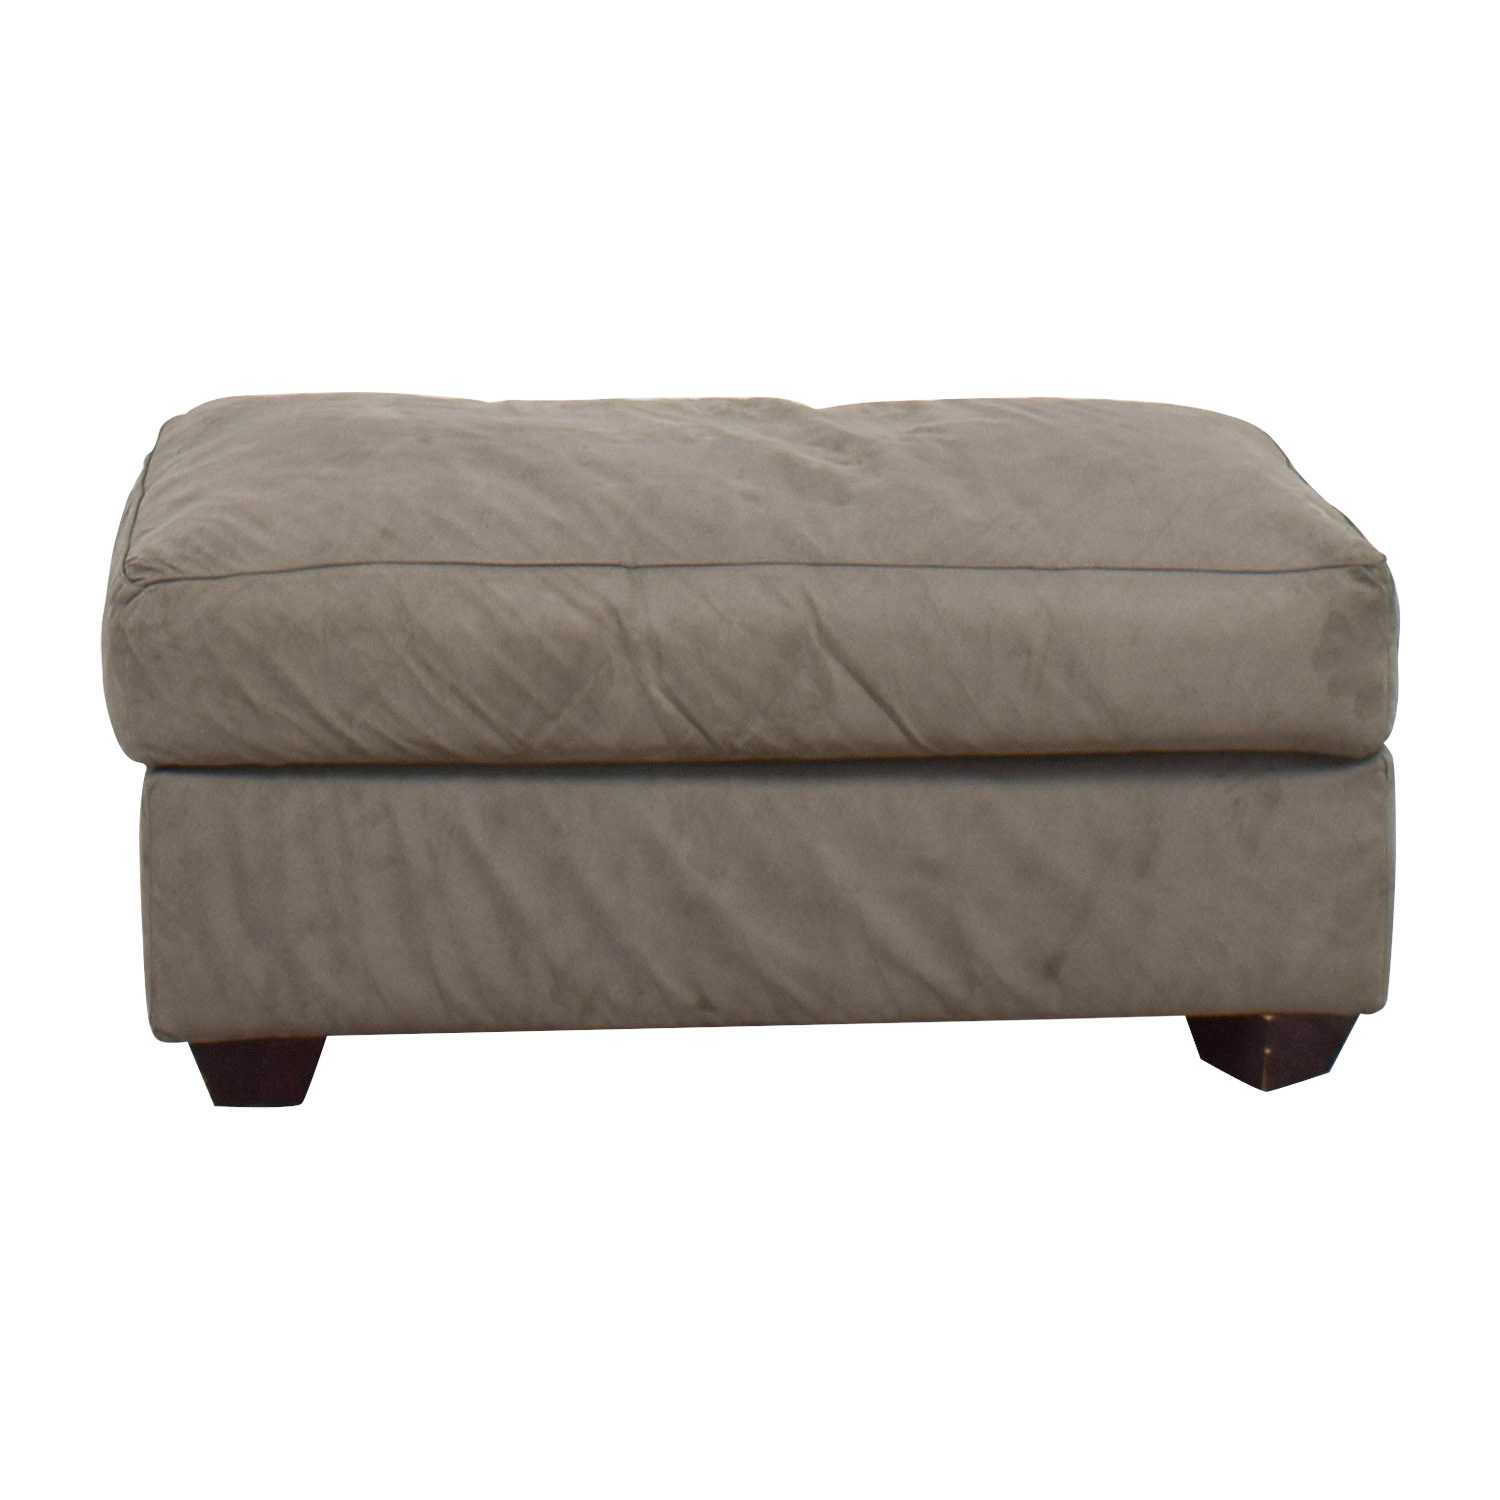 shop Palezetti 1930 JM Frank Inspired 1930 Grey Ottoman Palezetti 1930 Ottomans